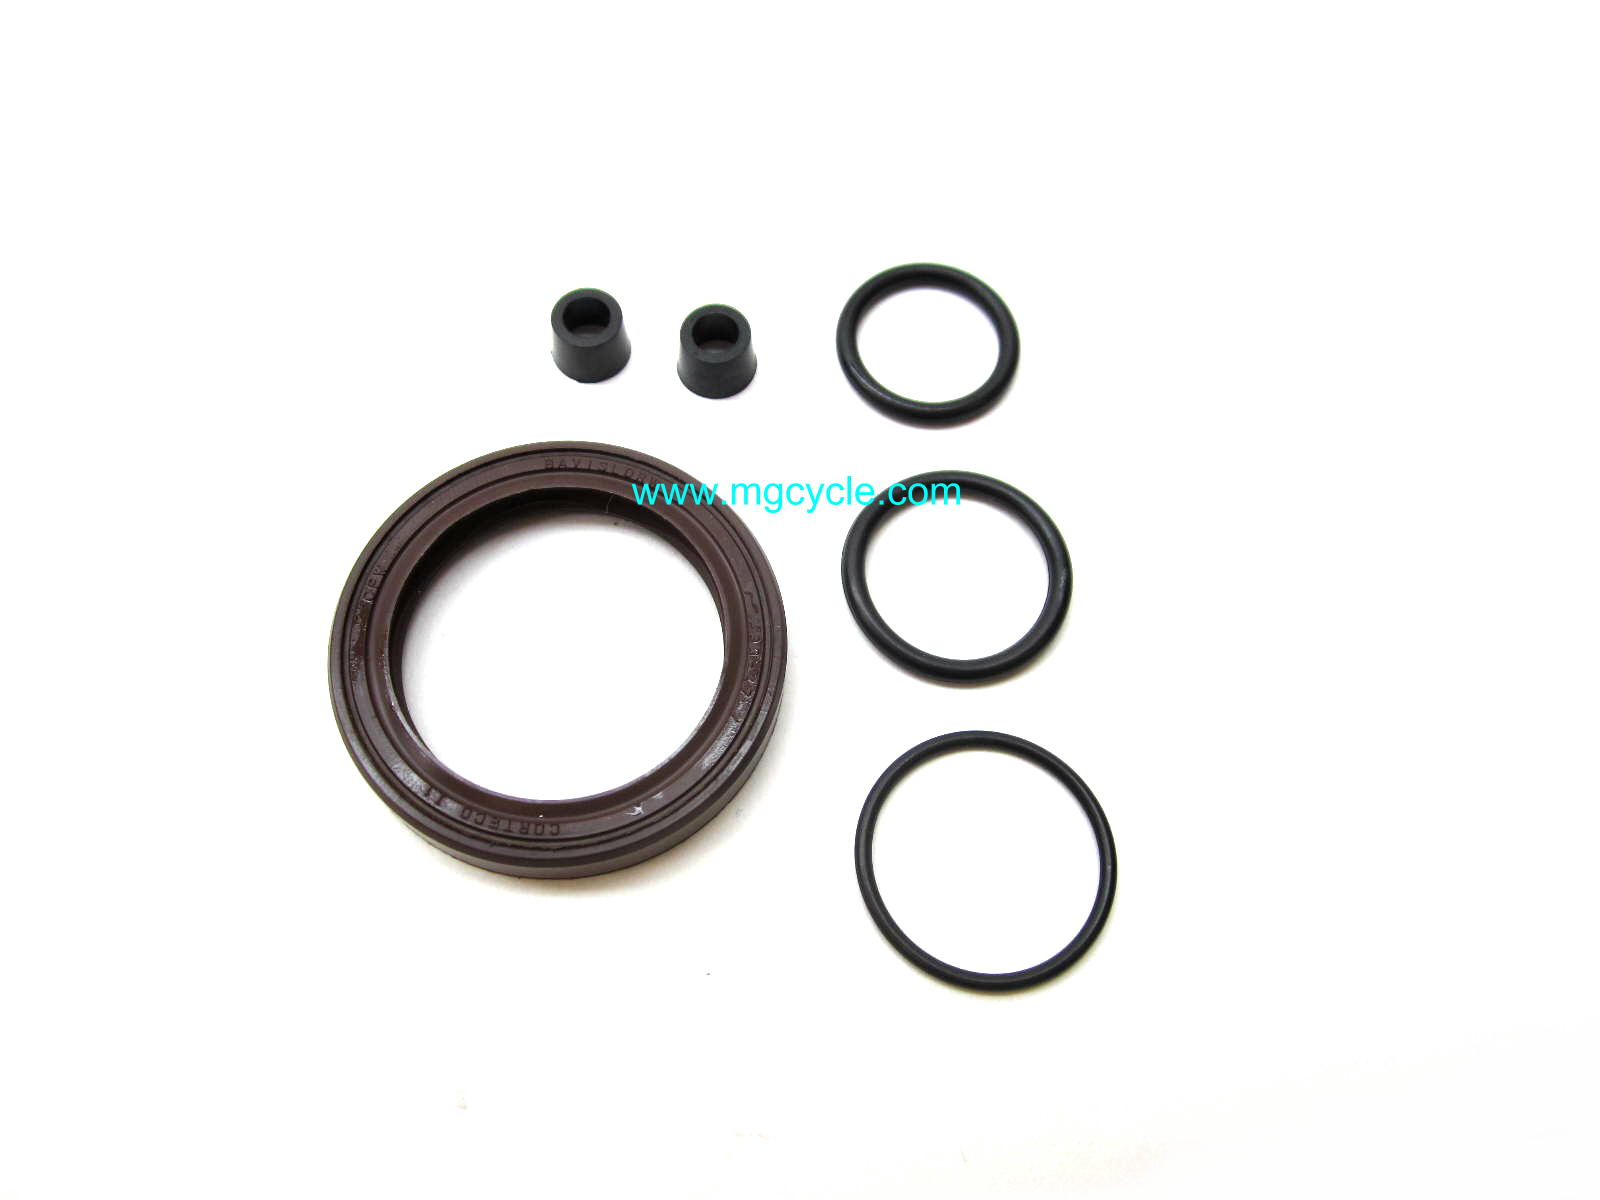 Supplemental Clutch Installation Kit